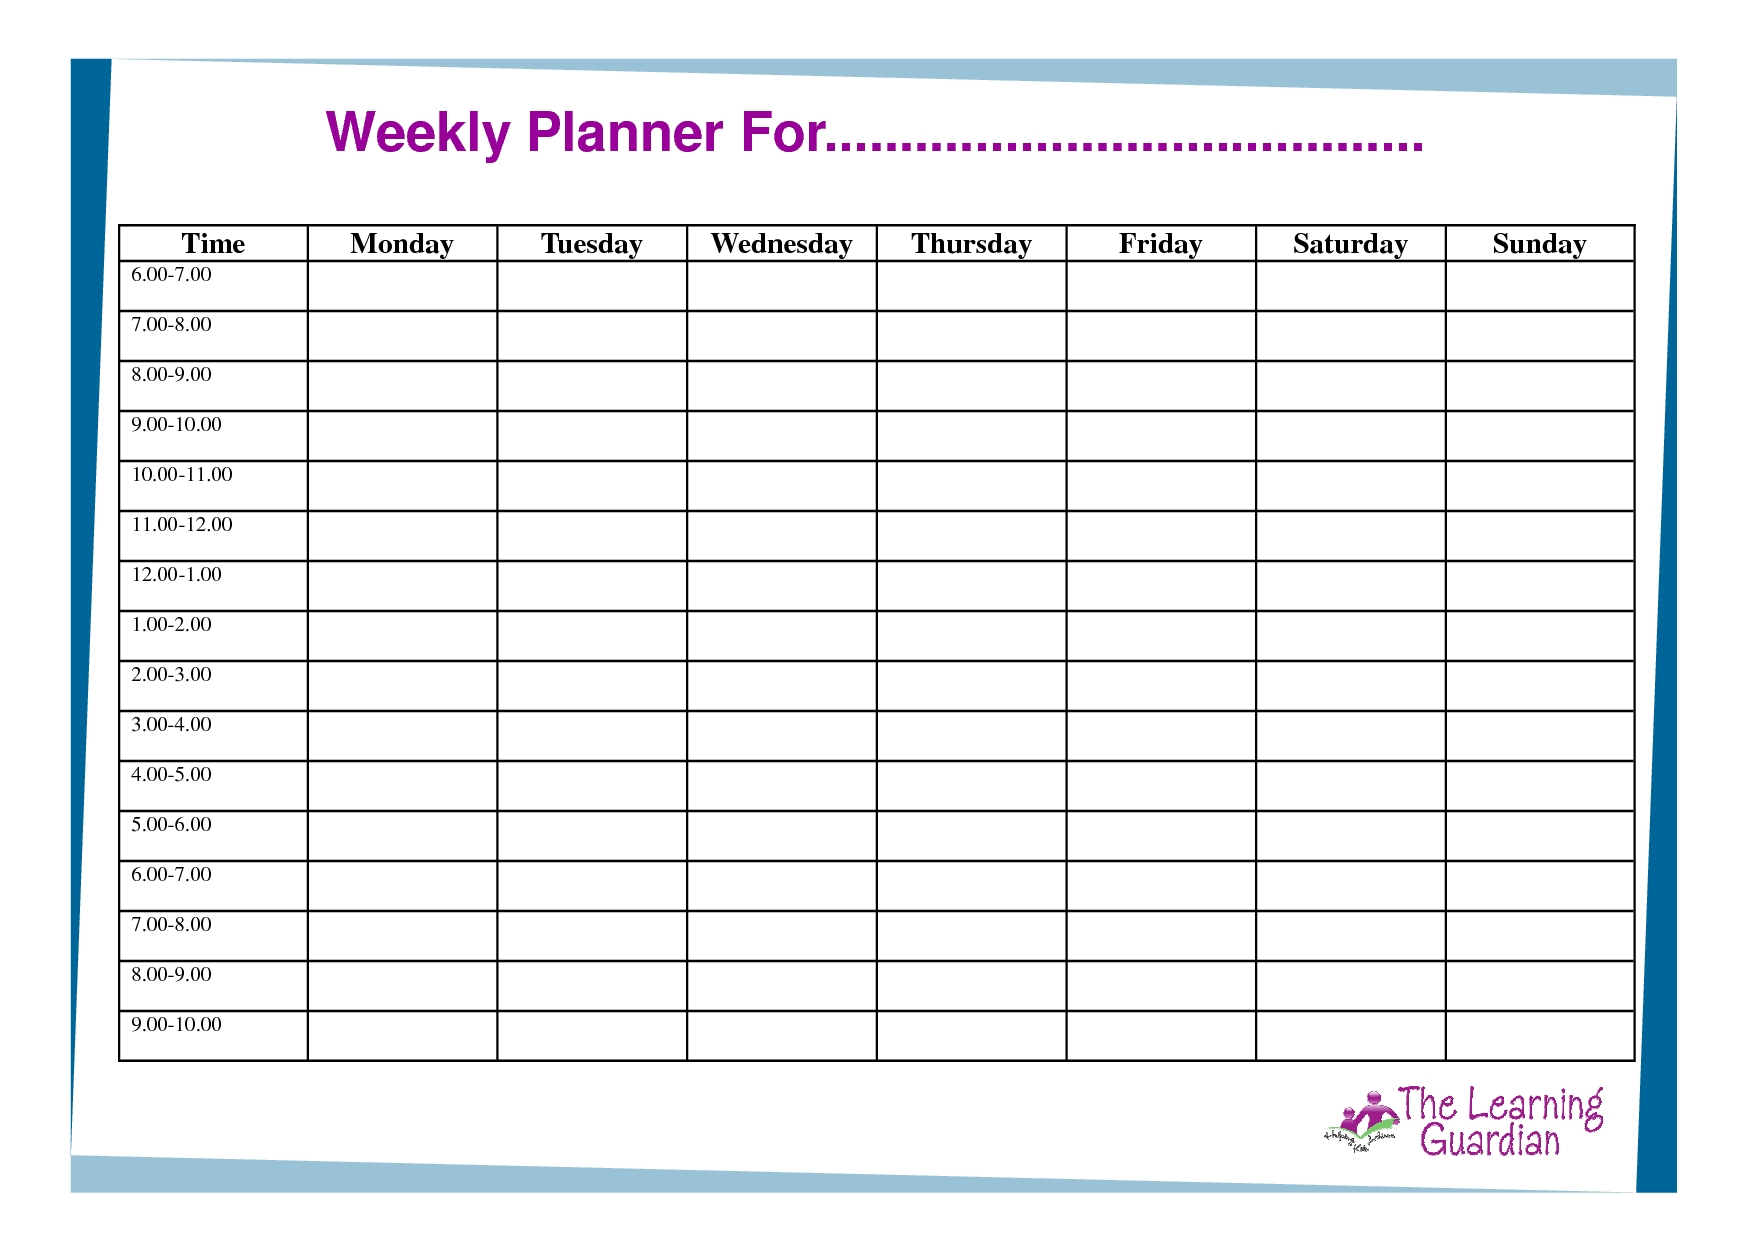 Free Printable Weekly Calendar Templates | Weekly Planner For Time with regard to Monday Thru Friday Calendar 2020 Template